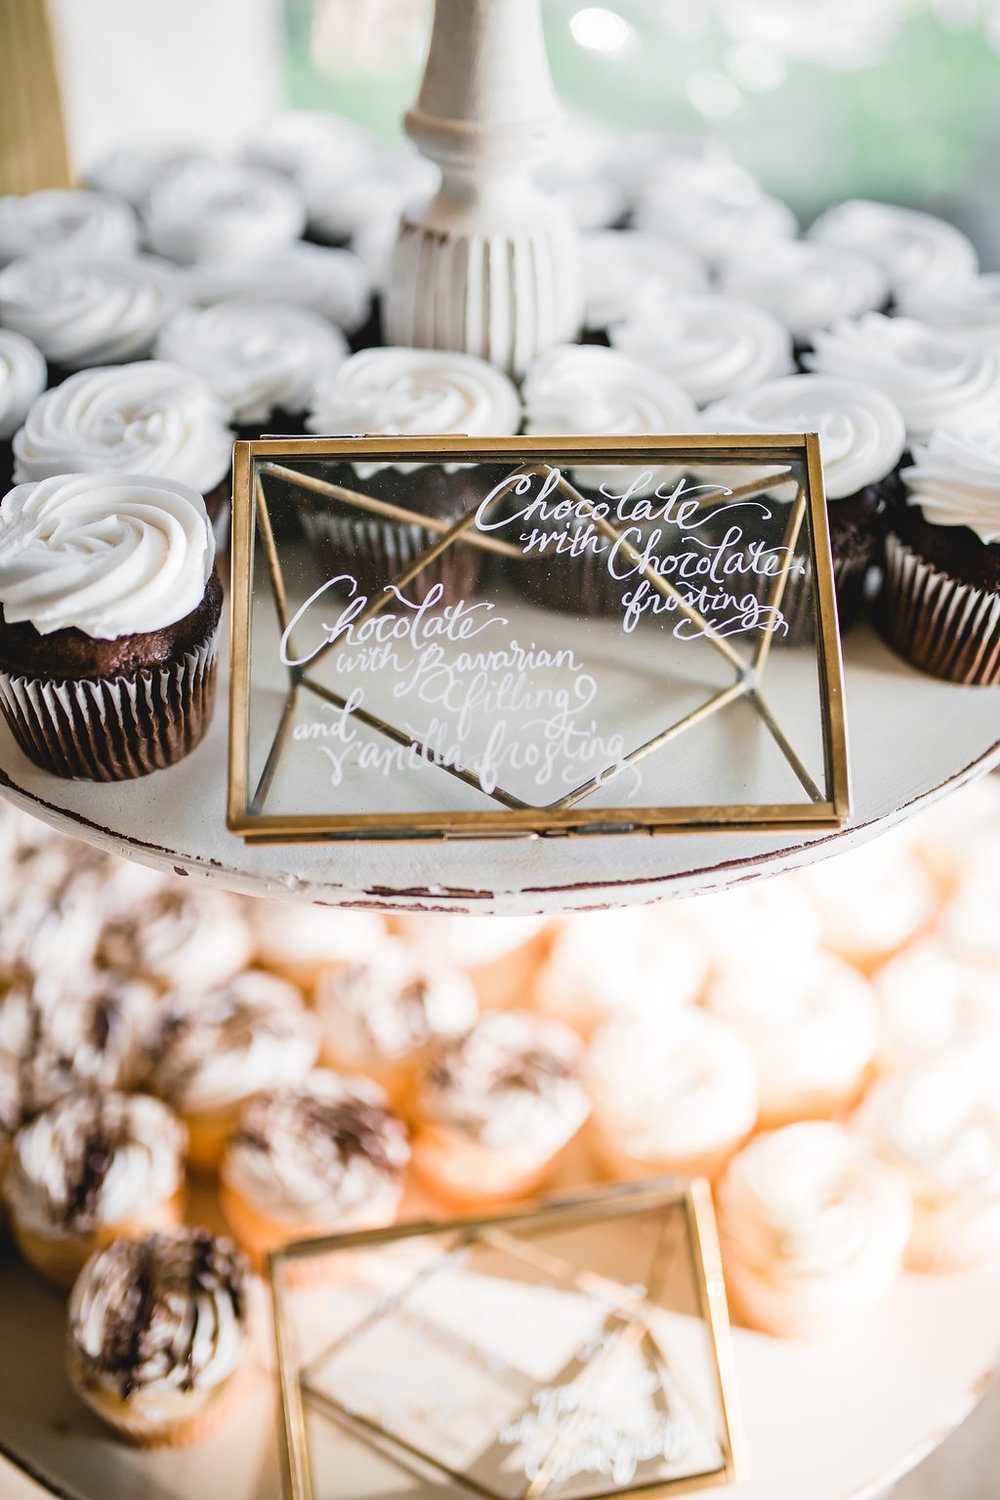 Leslee + Billy | Aqua Fox Photography | Legacy Hill Farm | dessert bar signage on geo domes by A Vintage Touch weddings